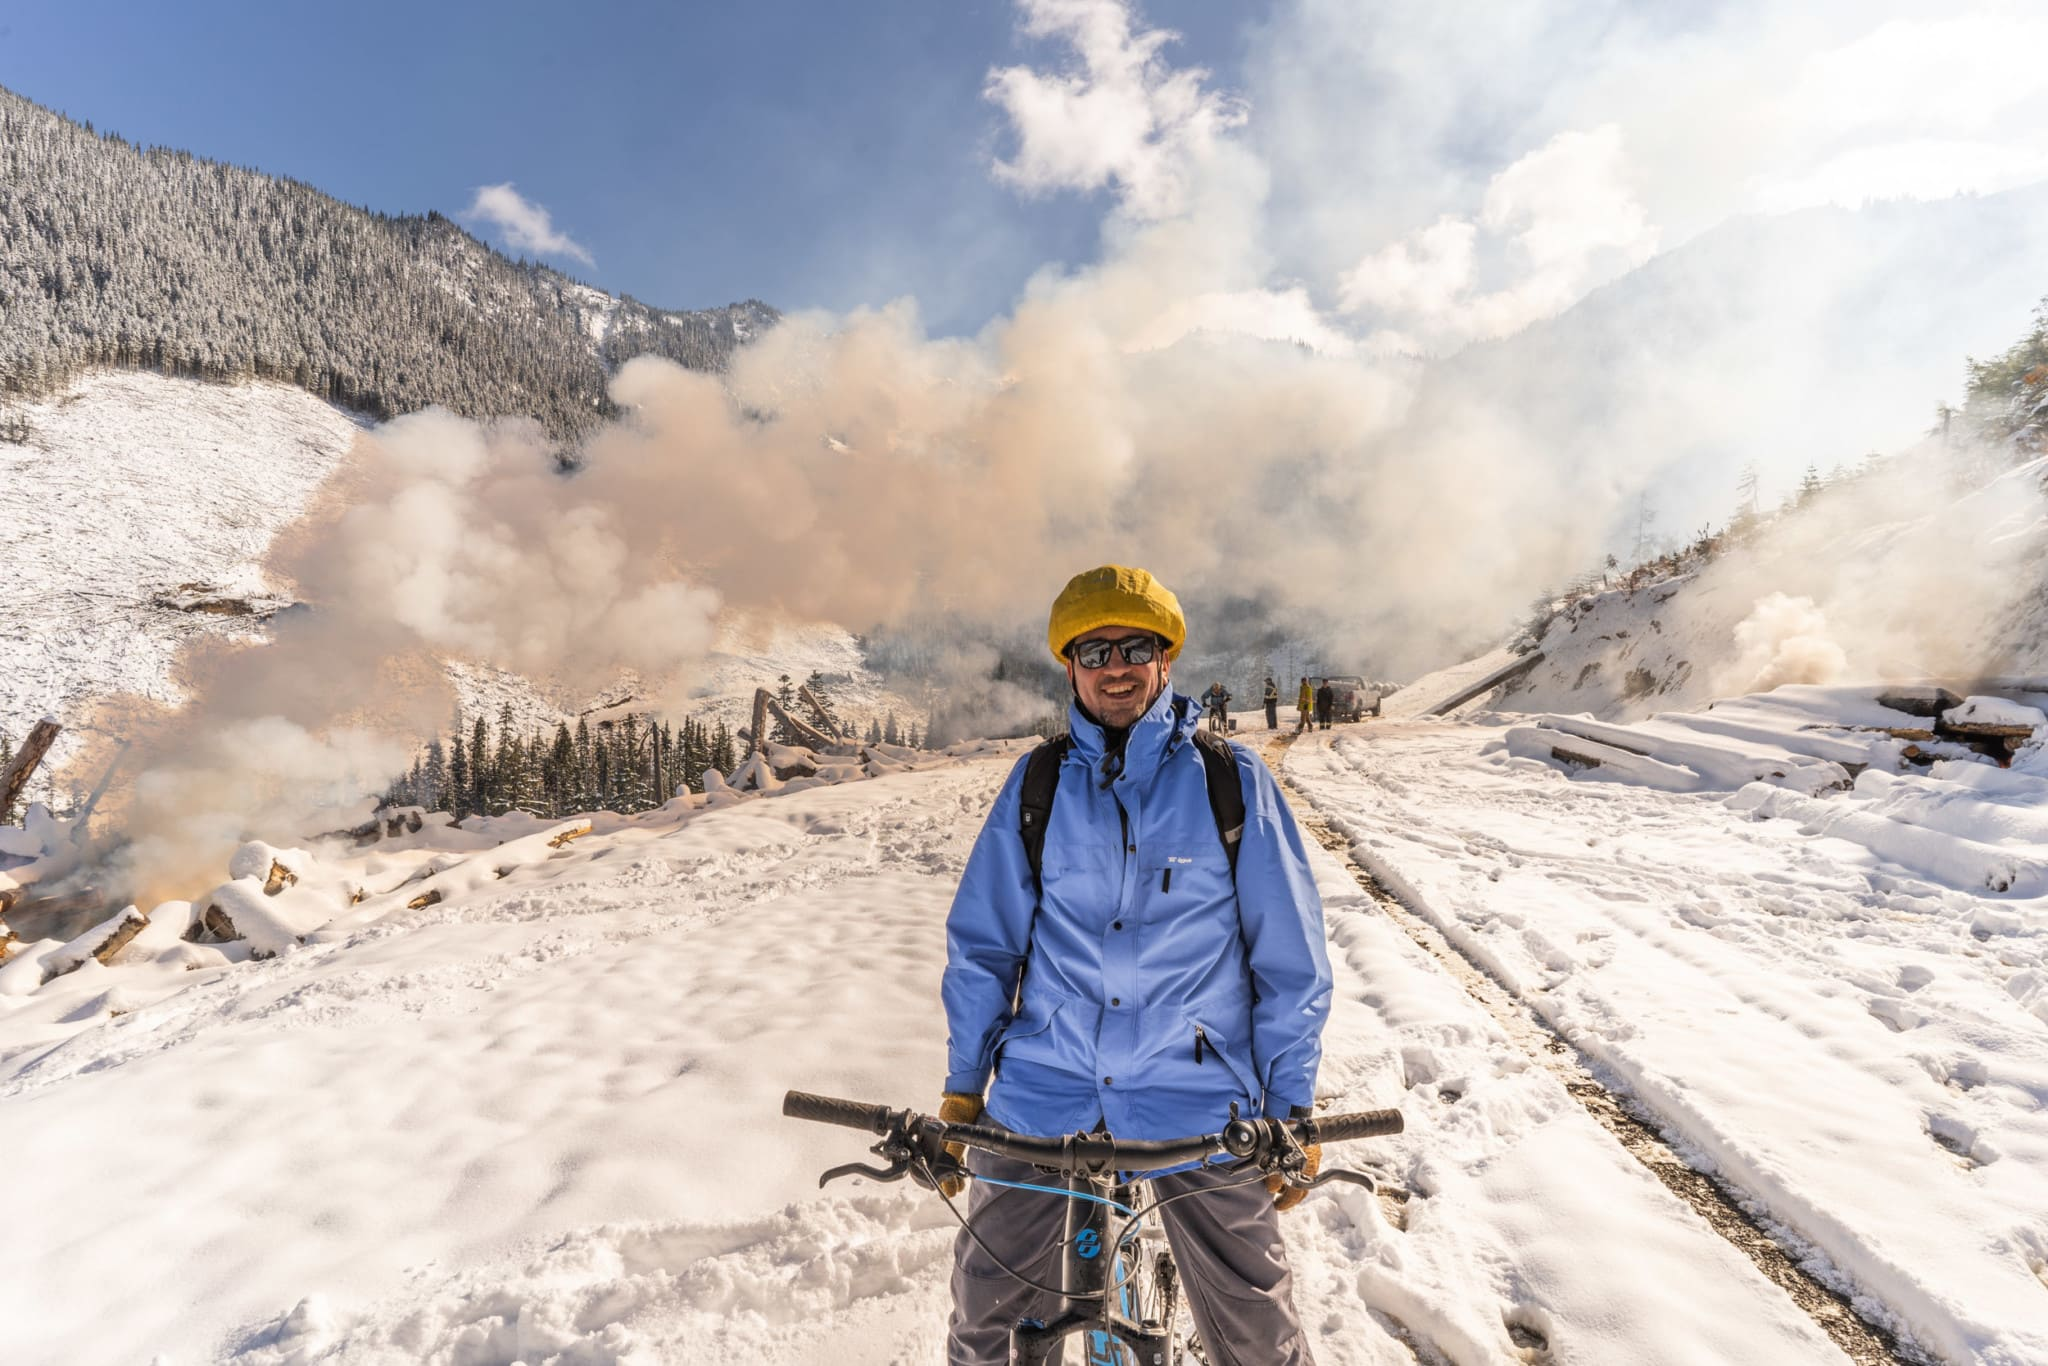 Author Chris Pollon rides an electric bike in the Manning Park 'Doughnut Hole.' Slash piles from recent clearcut logging on East Point Mountain are being burned by forestry company contractors, sending great plumes of smoke into the sky. Photo: Fernando Lessa / The Narwhal